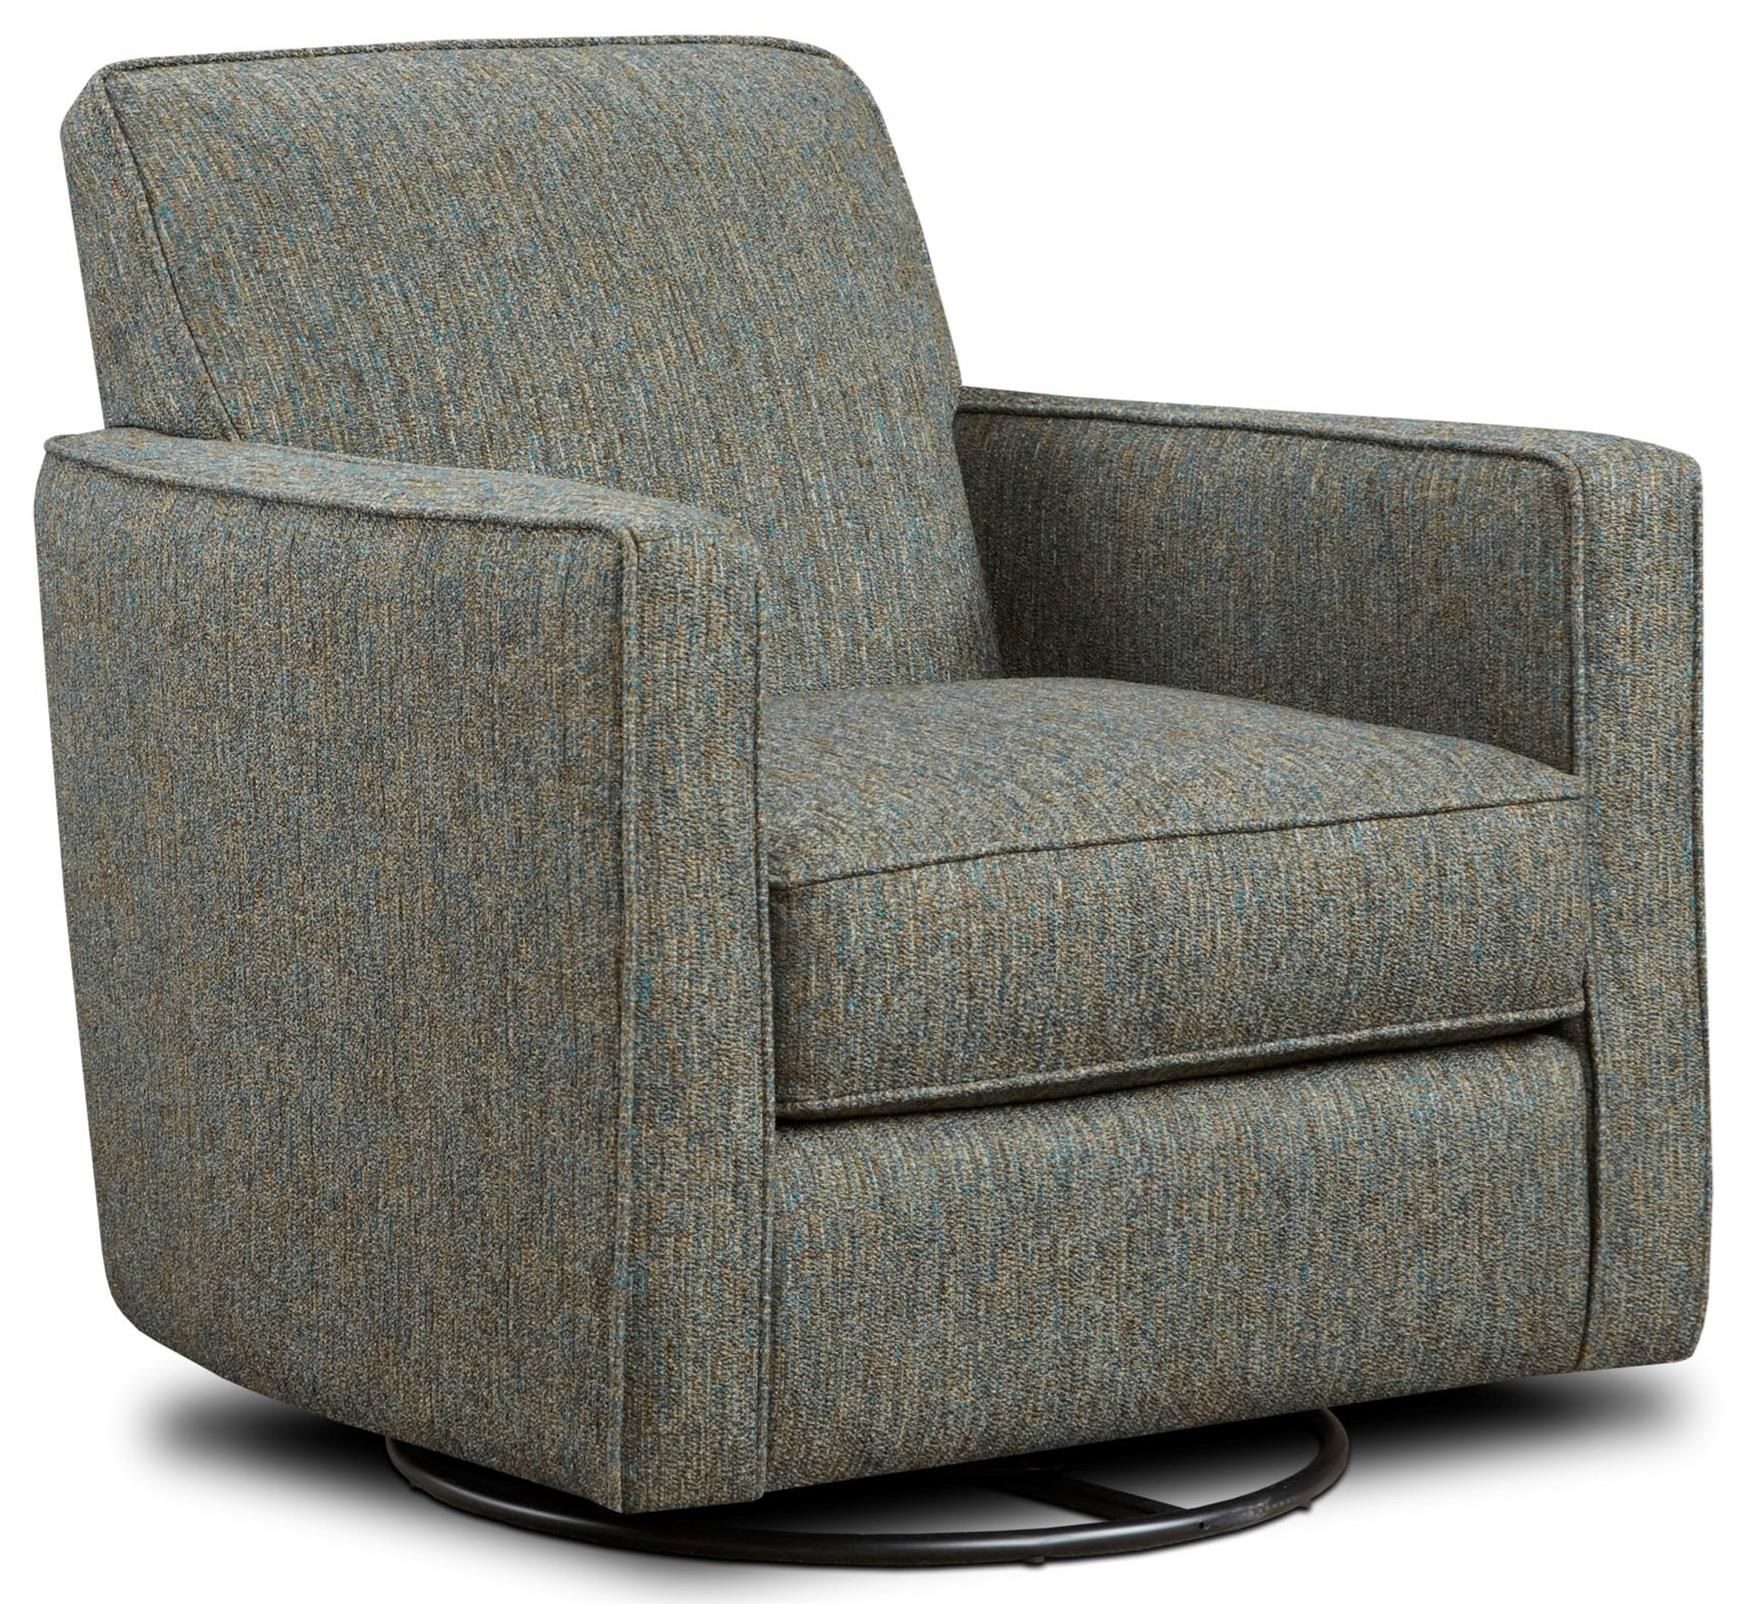 Fusion furniture 402 g contemporary swivel glider with for Swivel accent chairs with arms